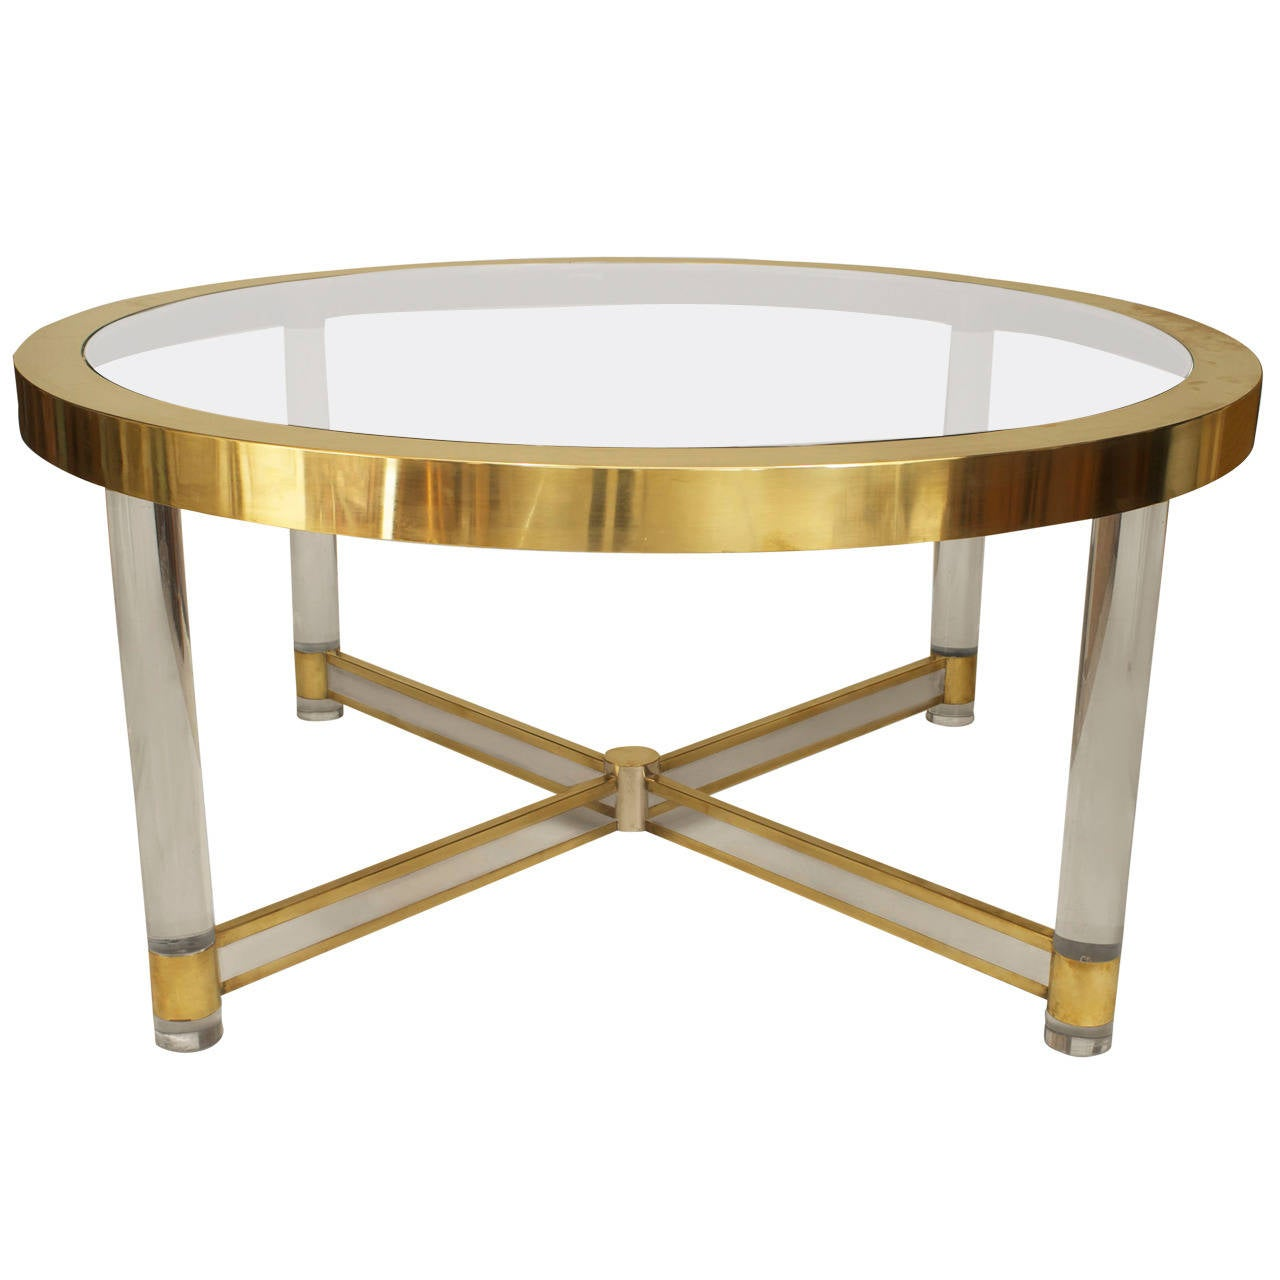 French Silver And Brass Trimmed Glass And Lucite Dining Table For Sale At 1s